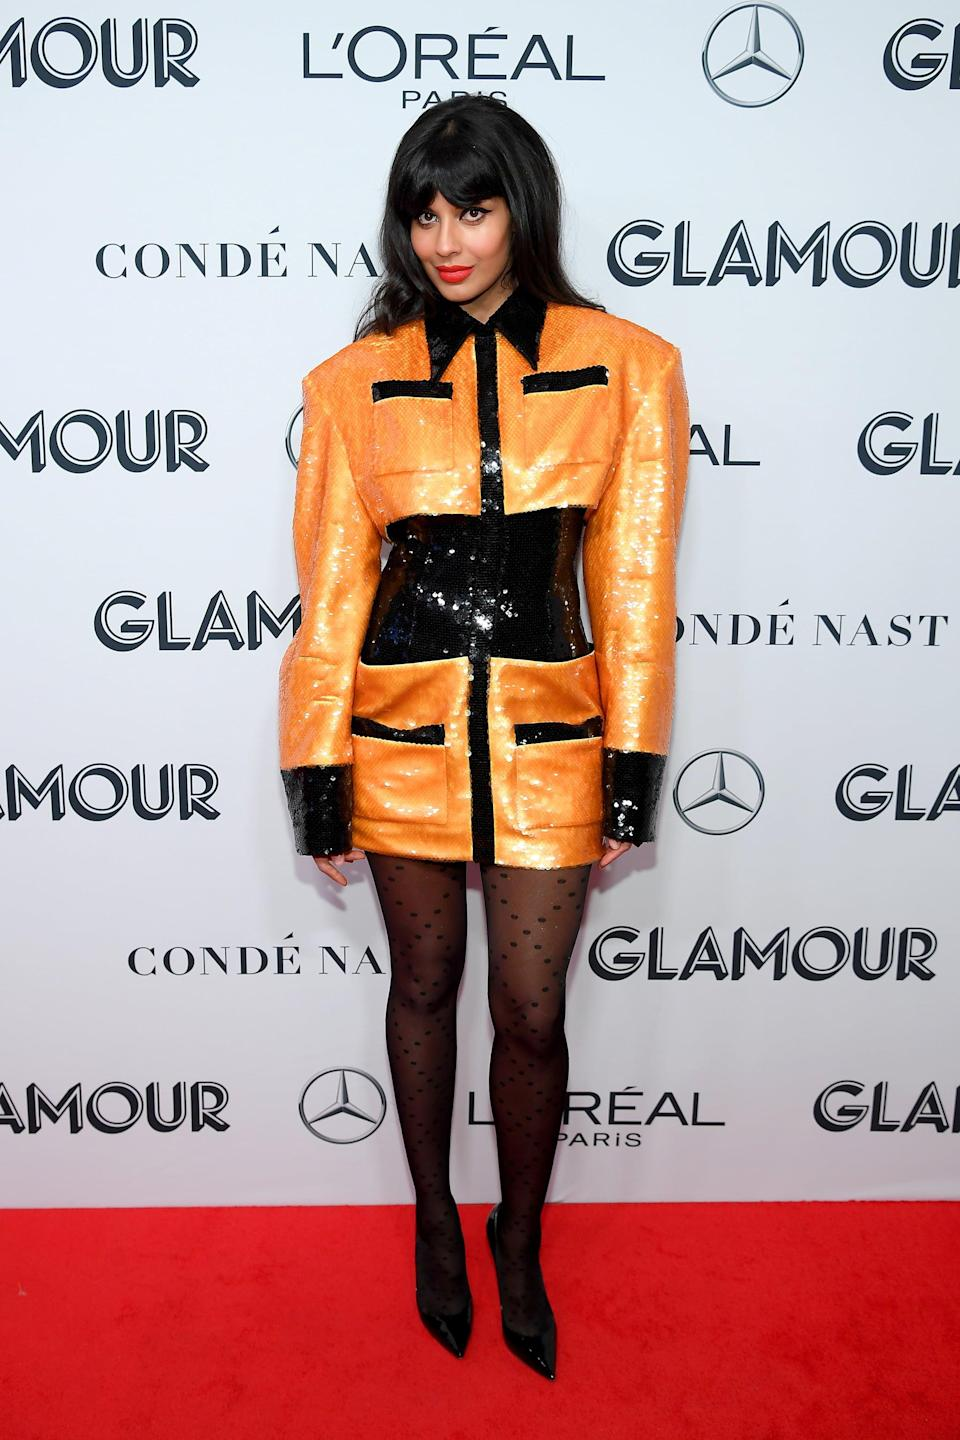 <p>Roach genius-ly paired this Balmain dress with subtly printed tights for that extra zhuzh. </p>